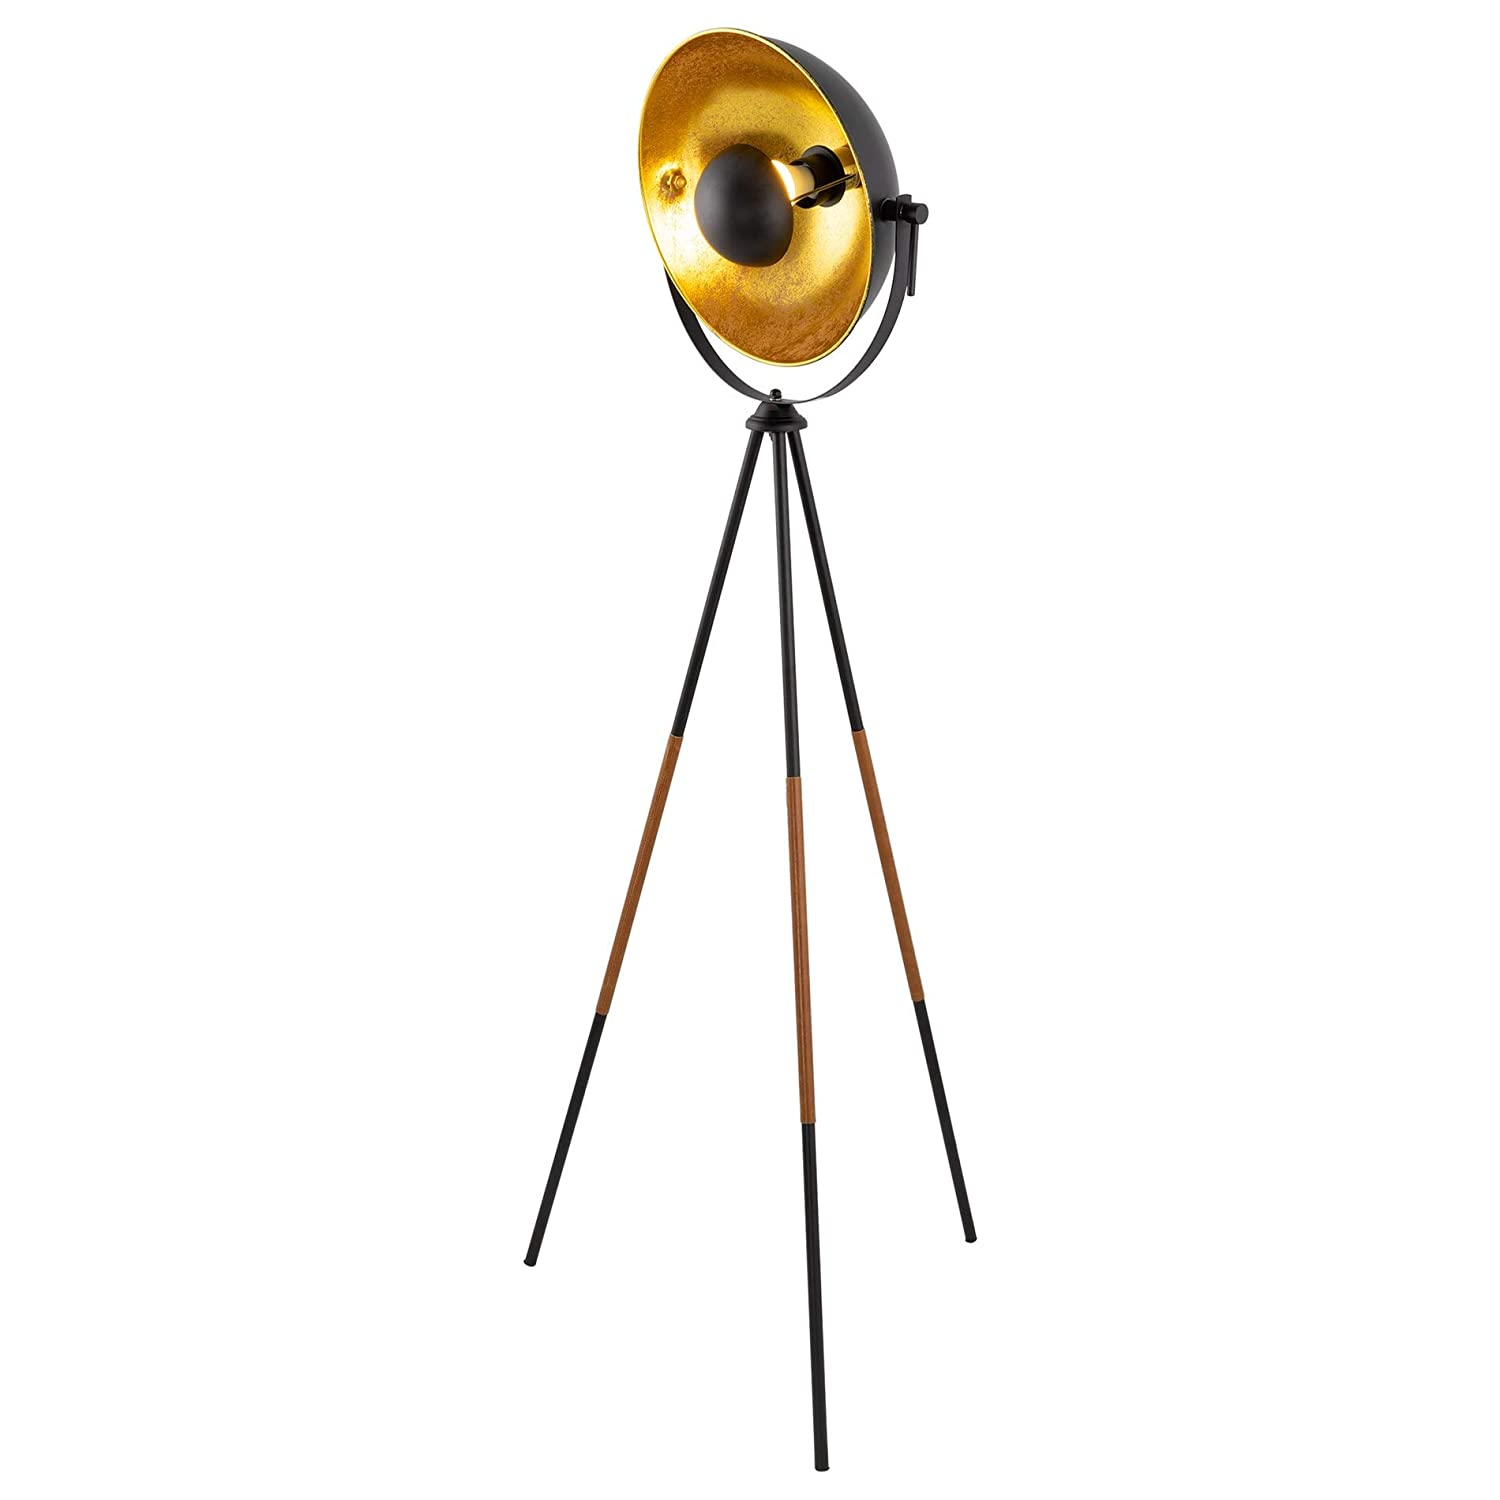 """Kira Home Juno 58"""" Modern Industrial Tripod LED Floor Lamp + 9W Bulb (Energy Efficient/Eco-Friendly), Leather Accent Legs, Satellite Style Shade, Black Finish"""